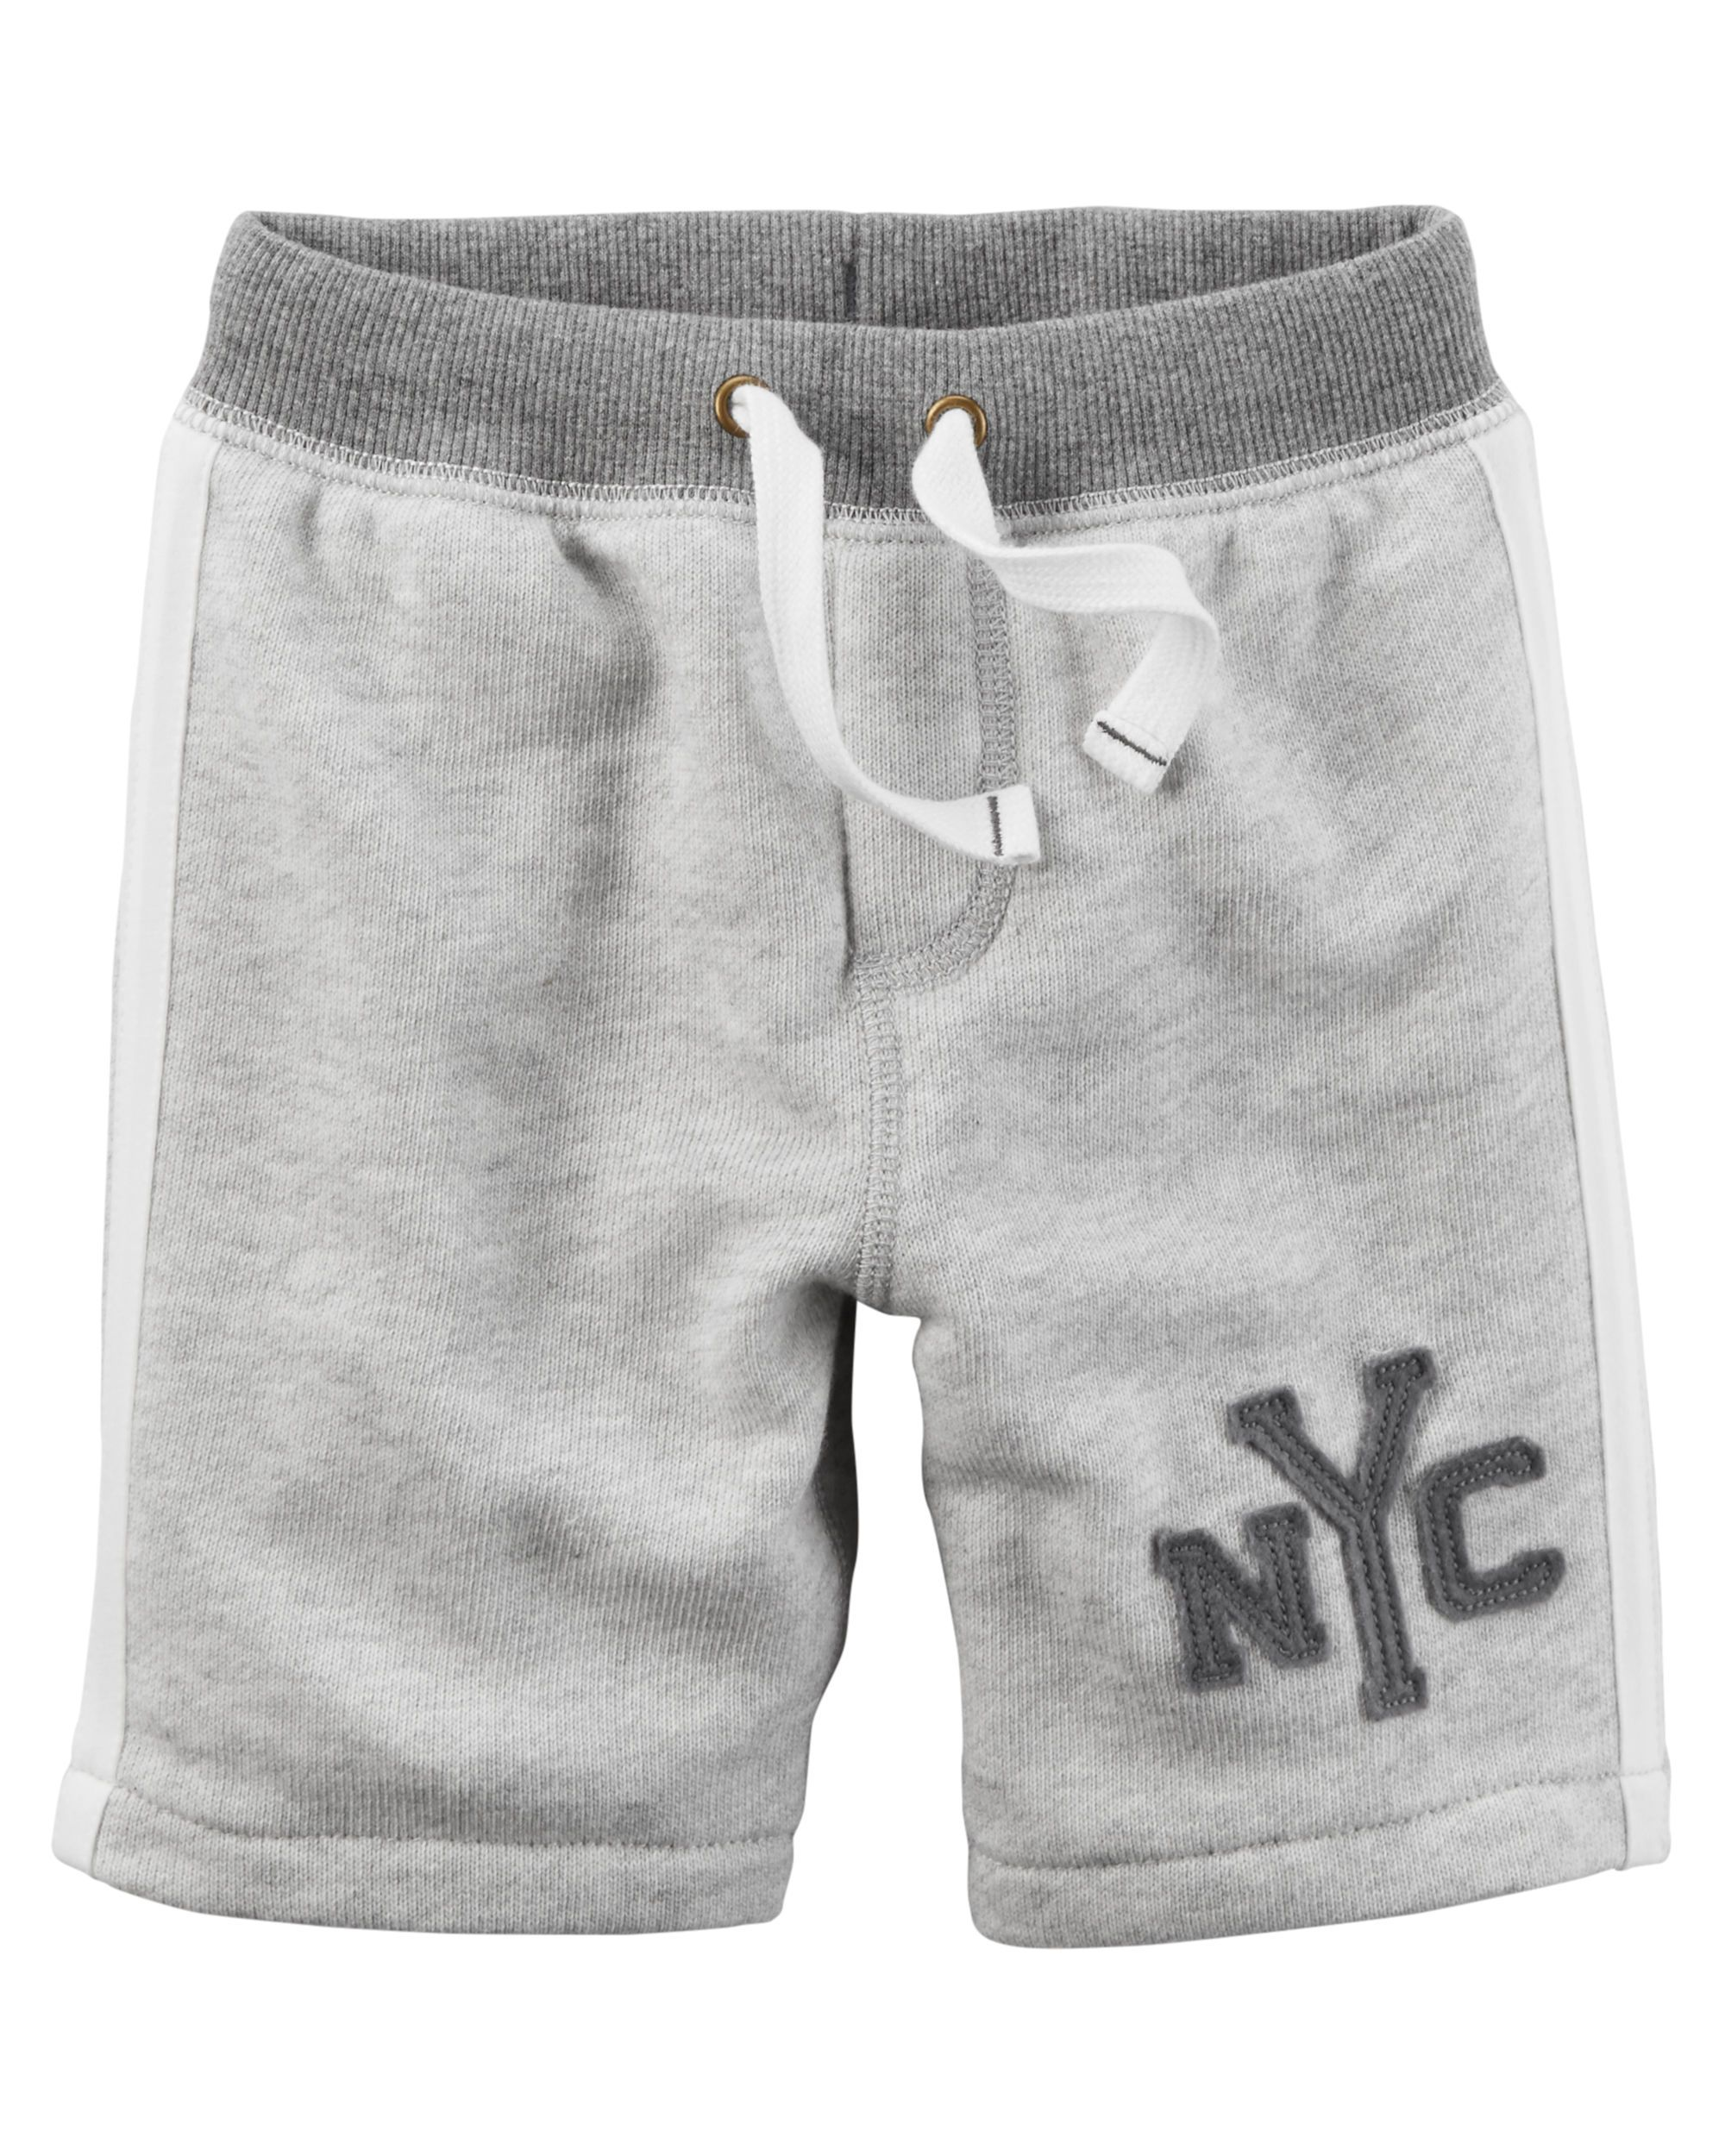 1f41be8fb26 Kid Boy Athletic Marled French Terry Shorts from Carters.com. Shop clothing    accessories from a trusted name in kids